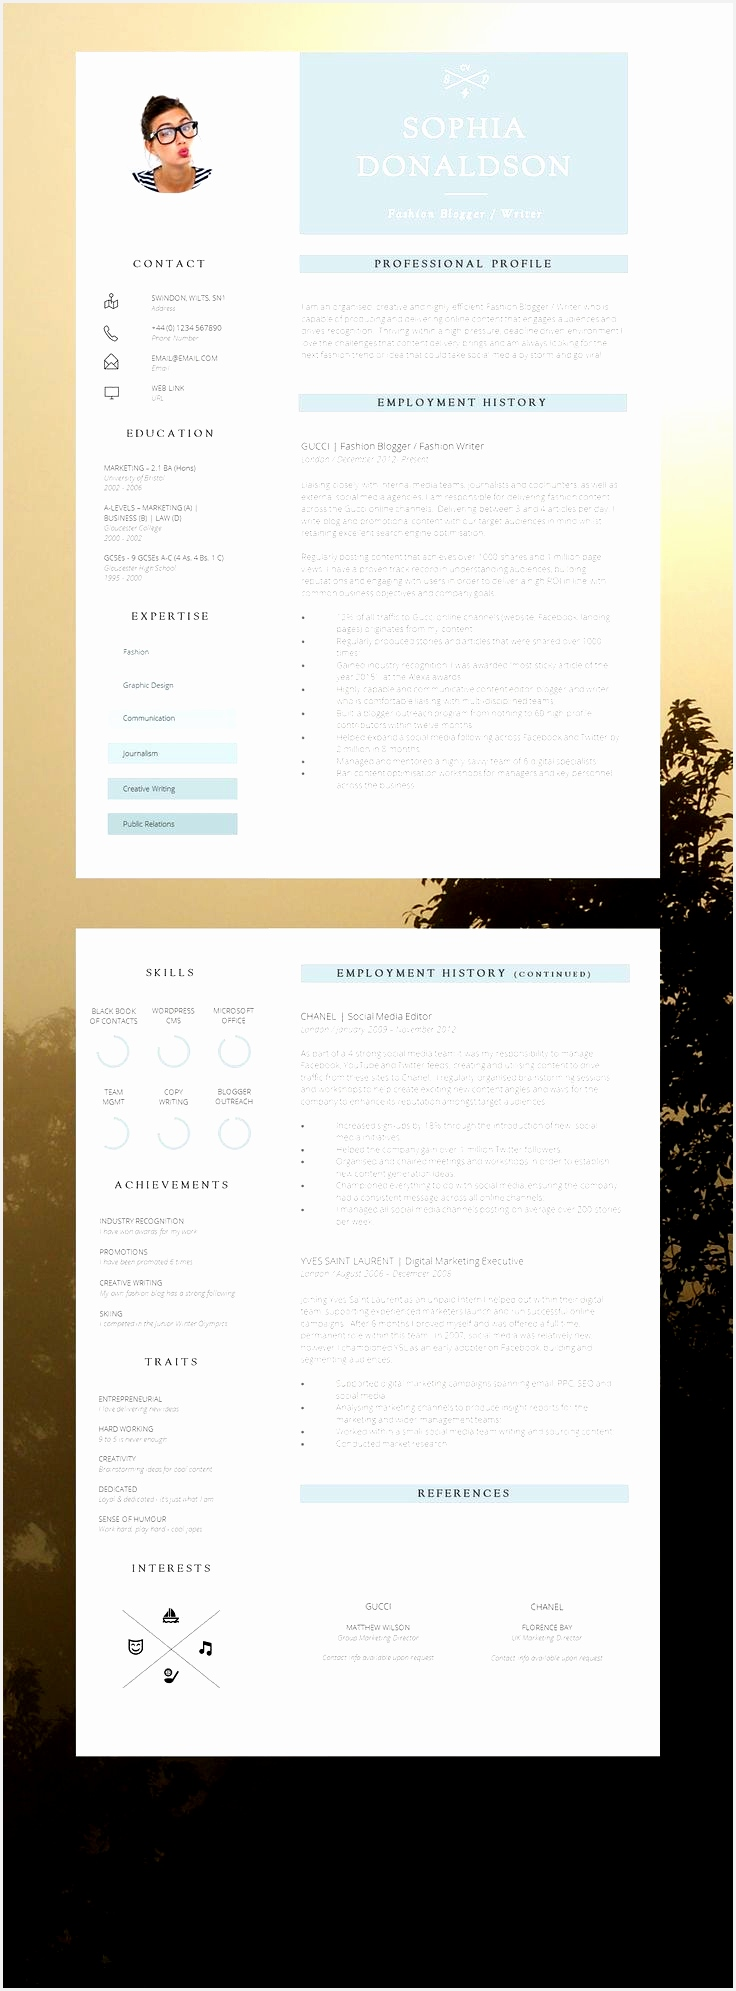 cv template by denisco and barker 2015  Free Samples